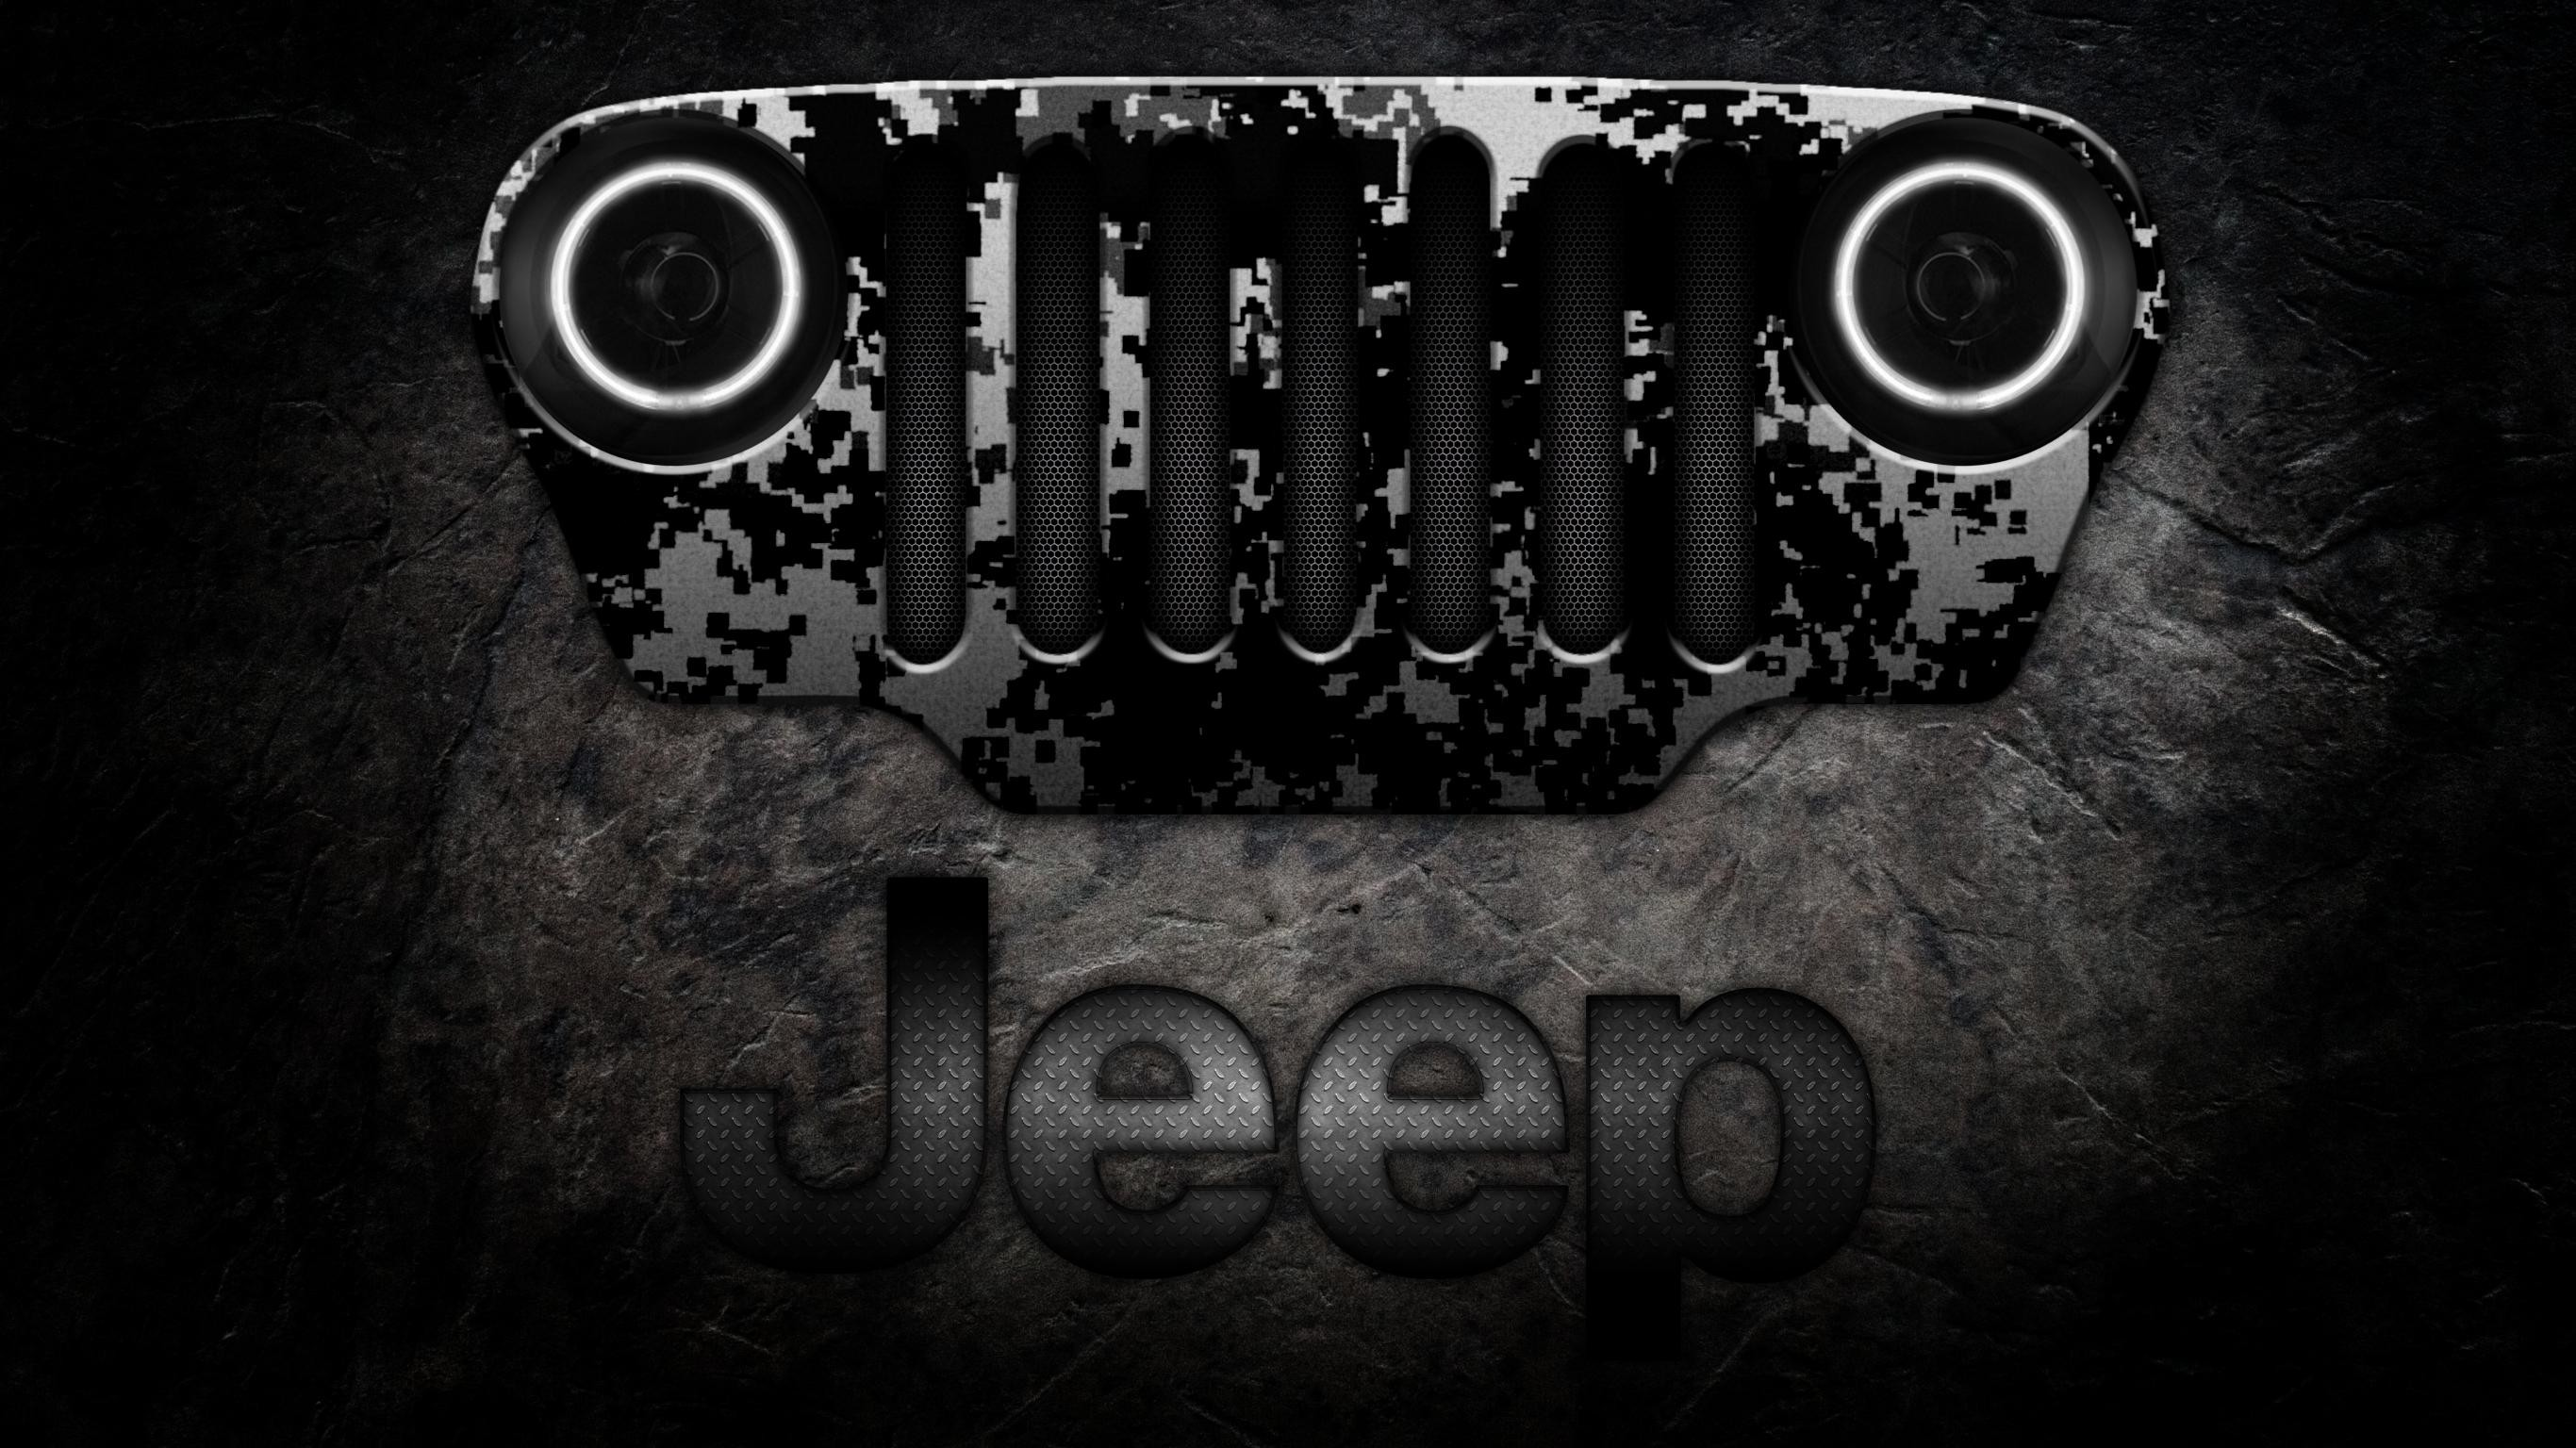 2732x1536 Jeep Wallpapers High Definition Wallpapers Jeep Pinterest 1600×1200 Jeep  Wallpapers (49 Wallpapers) | Adorable Wallpapers | Wallpapers | Pinterest |  ...